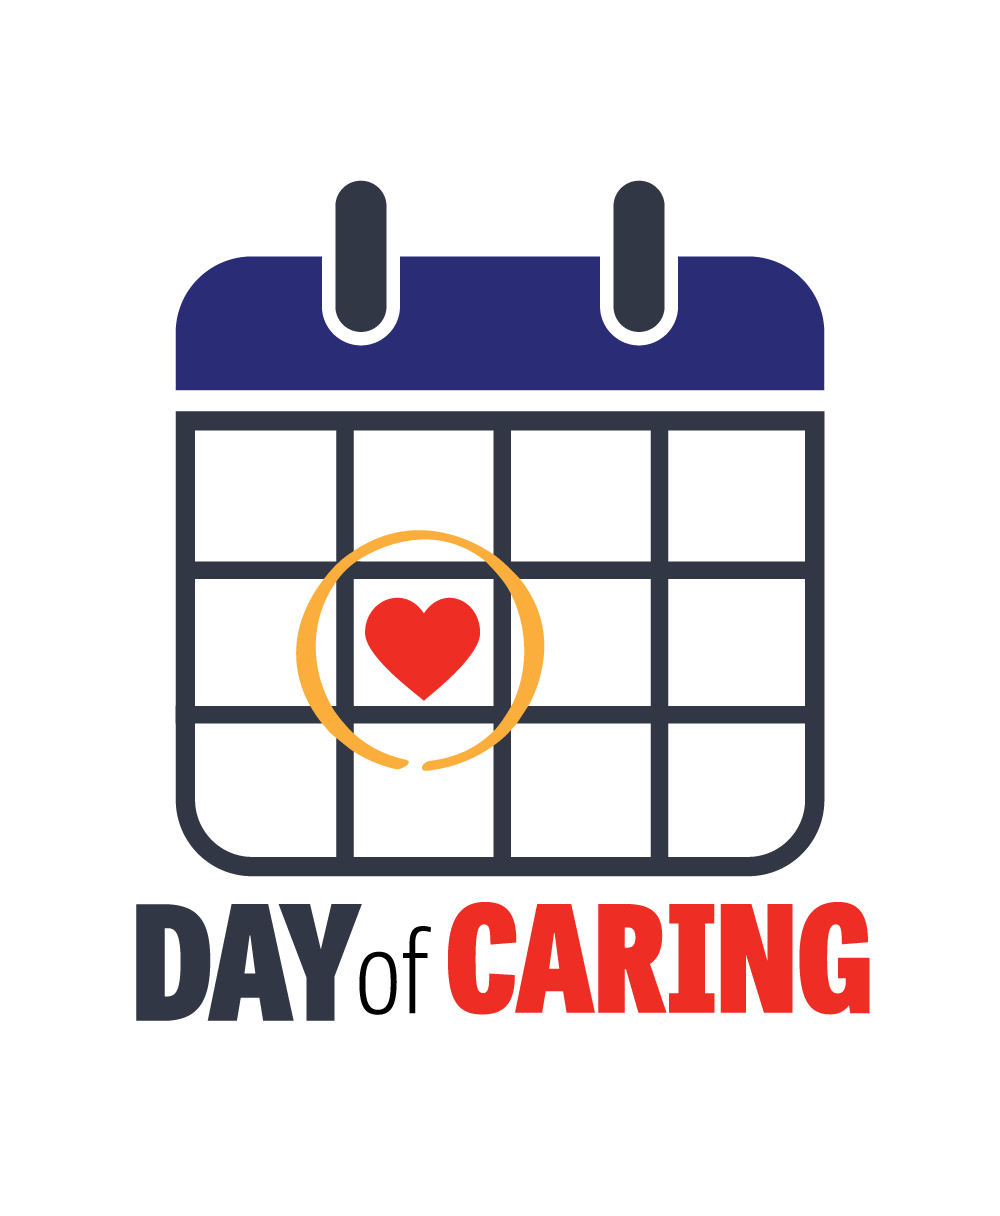 Day of Caring, October 2, 2015